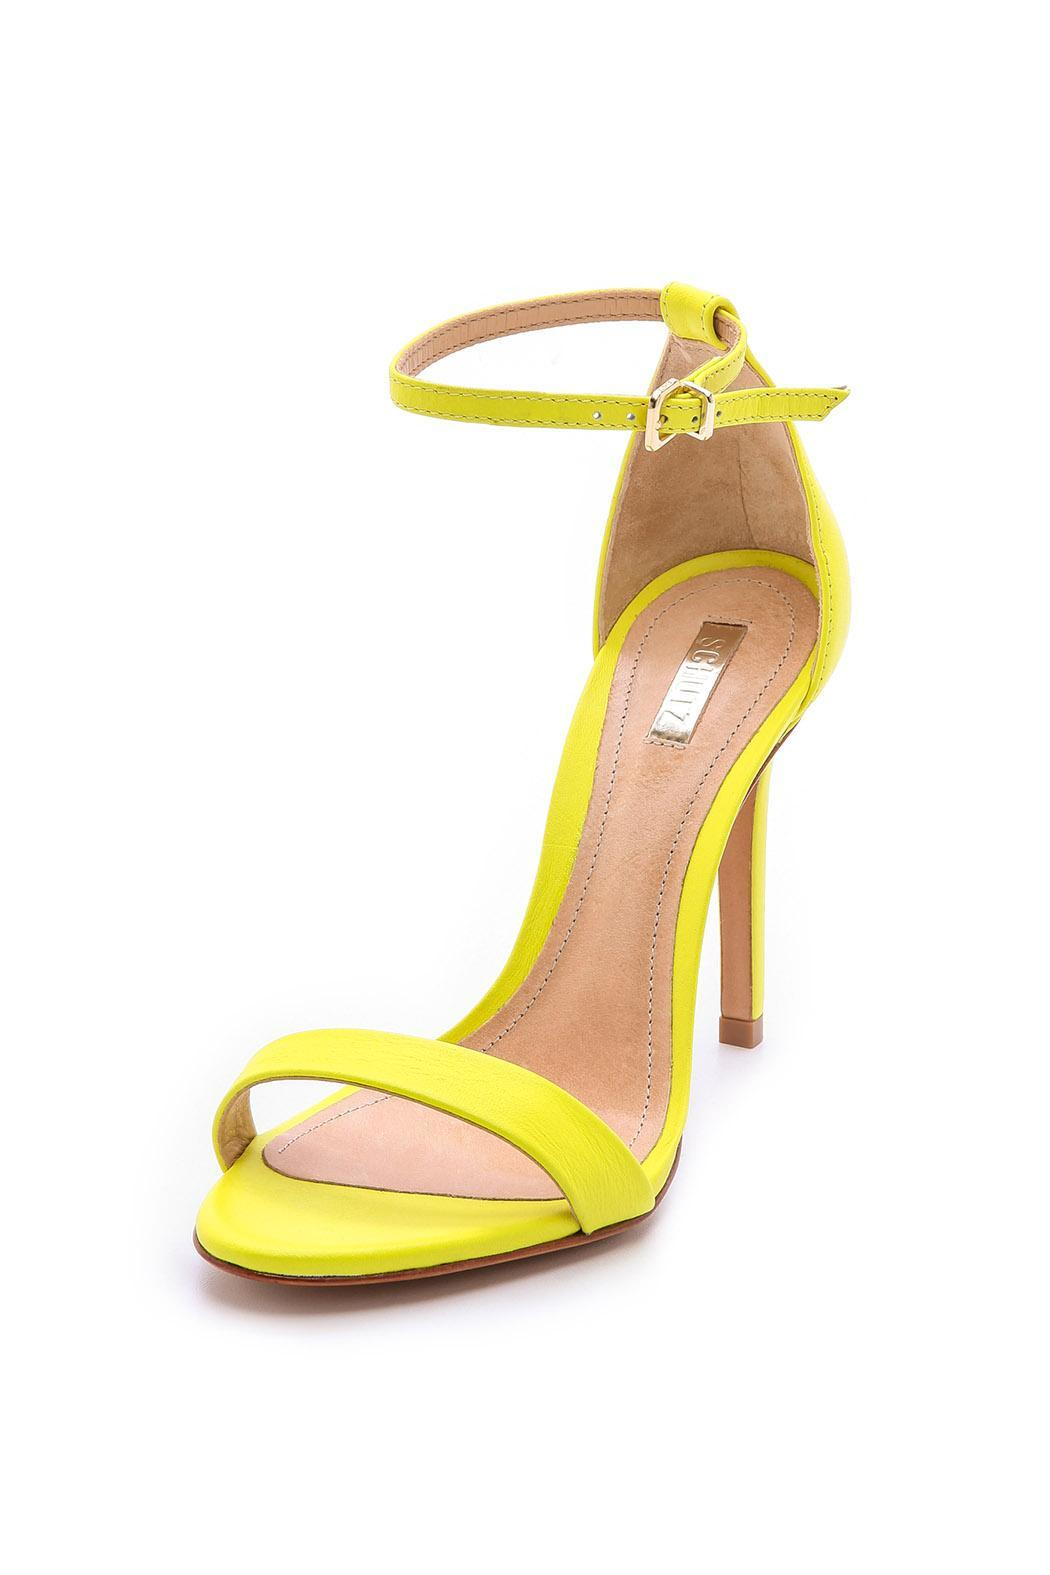 Cadey Lee Lime Heel